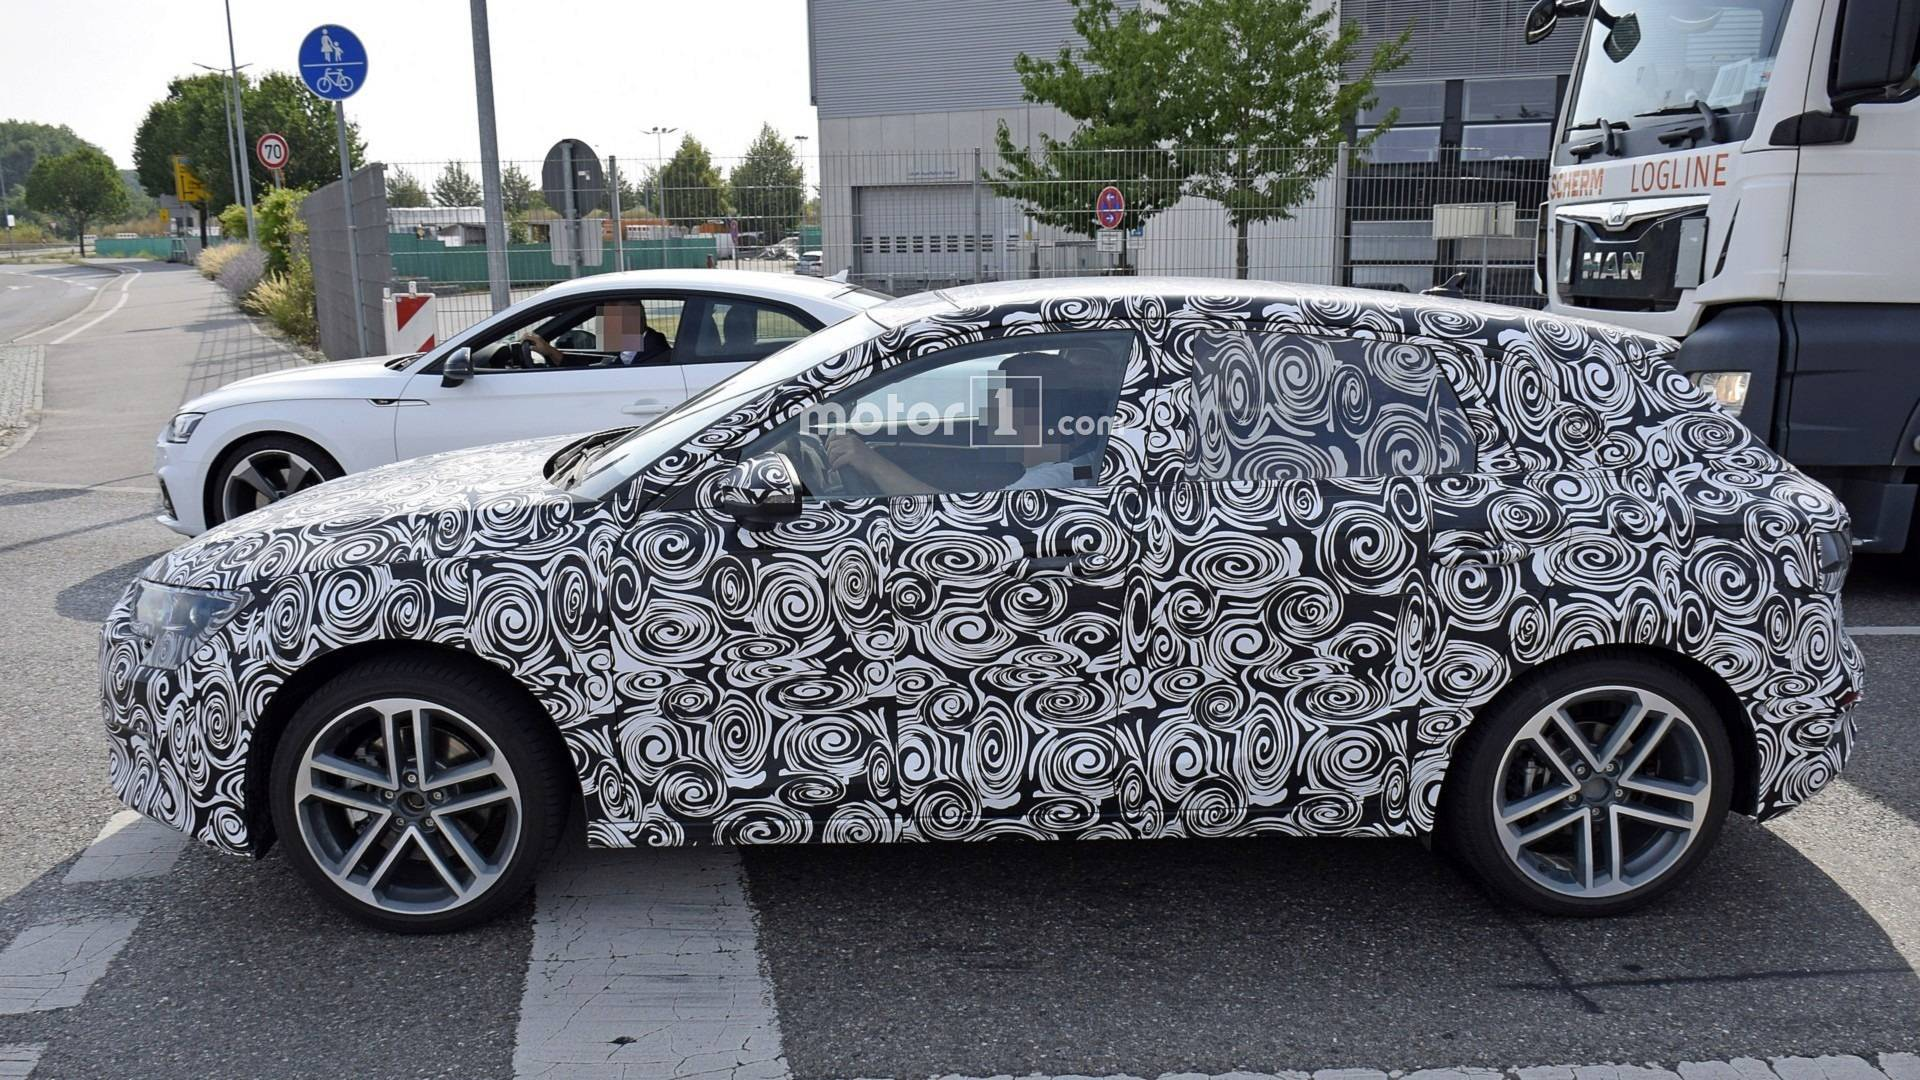 New Audi S Spied For The First Time UPDATE A Spotted - Audi a3 hatchback